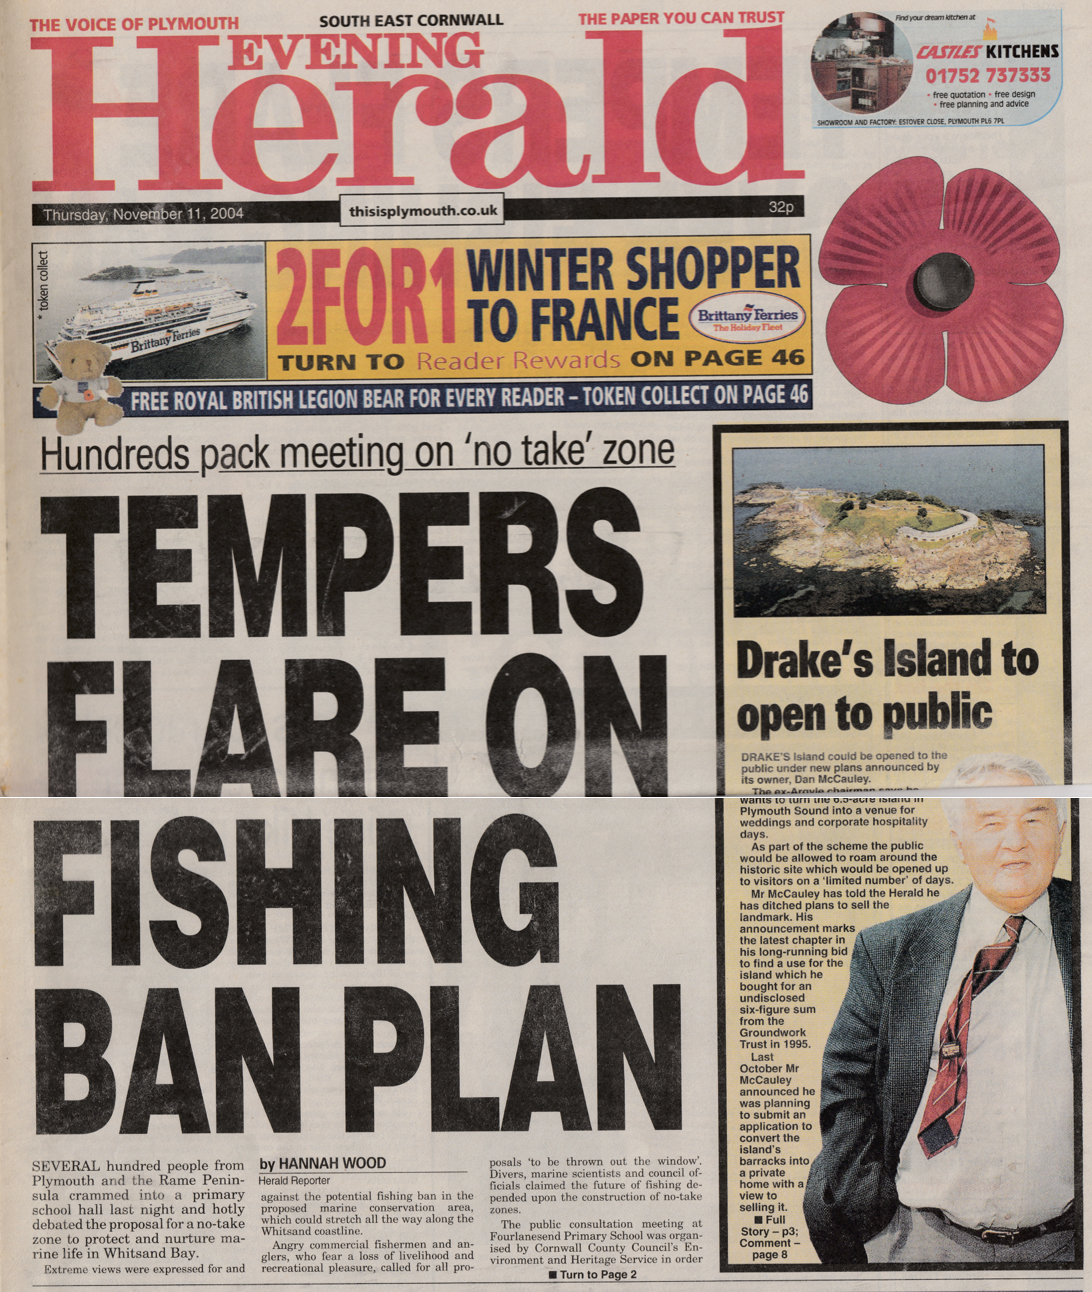 Coverage of a public meeting discussing a proposed 'no take zone' to protect marine life.